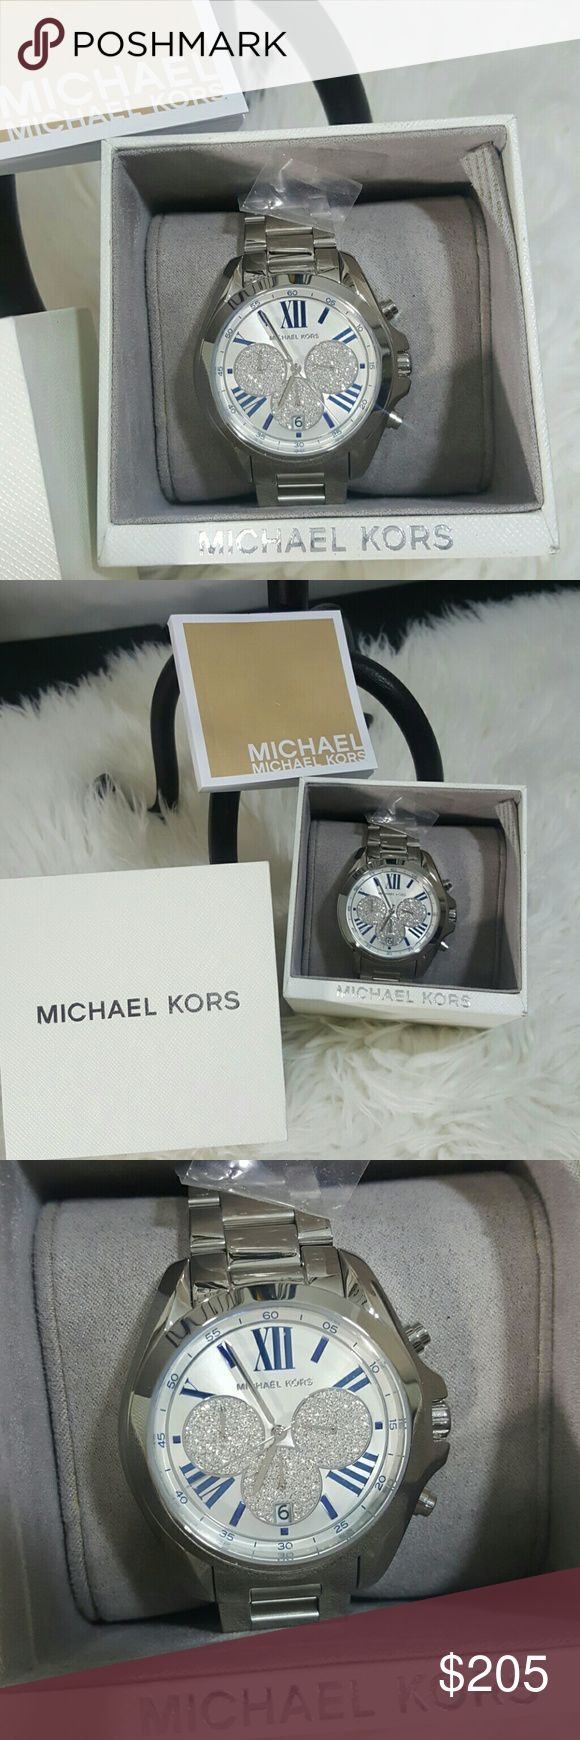 Nwt authentic Michael Kors Mickey,, watch This watch is a collectible,  beautiful silver with bling,, can be dressed up or down,blue Roman numeral numbers, stunning watch unisex Michael Kors Accessories Watches